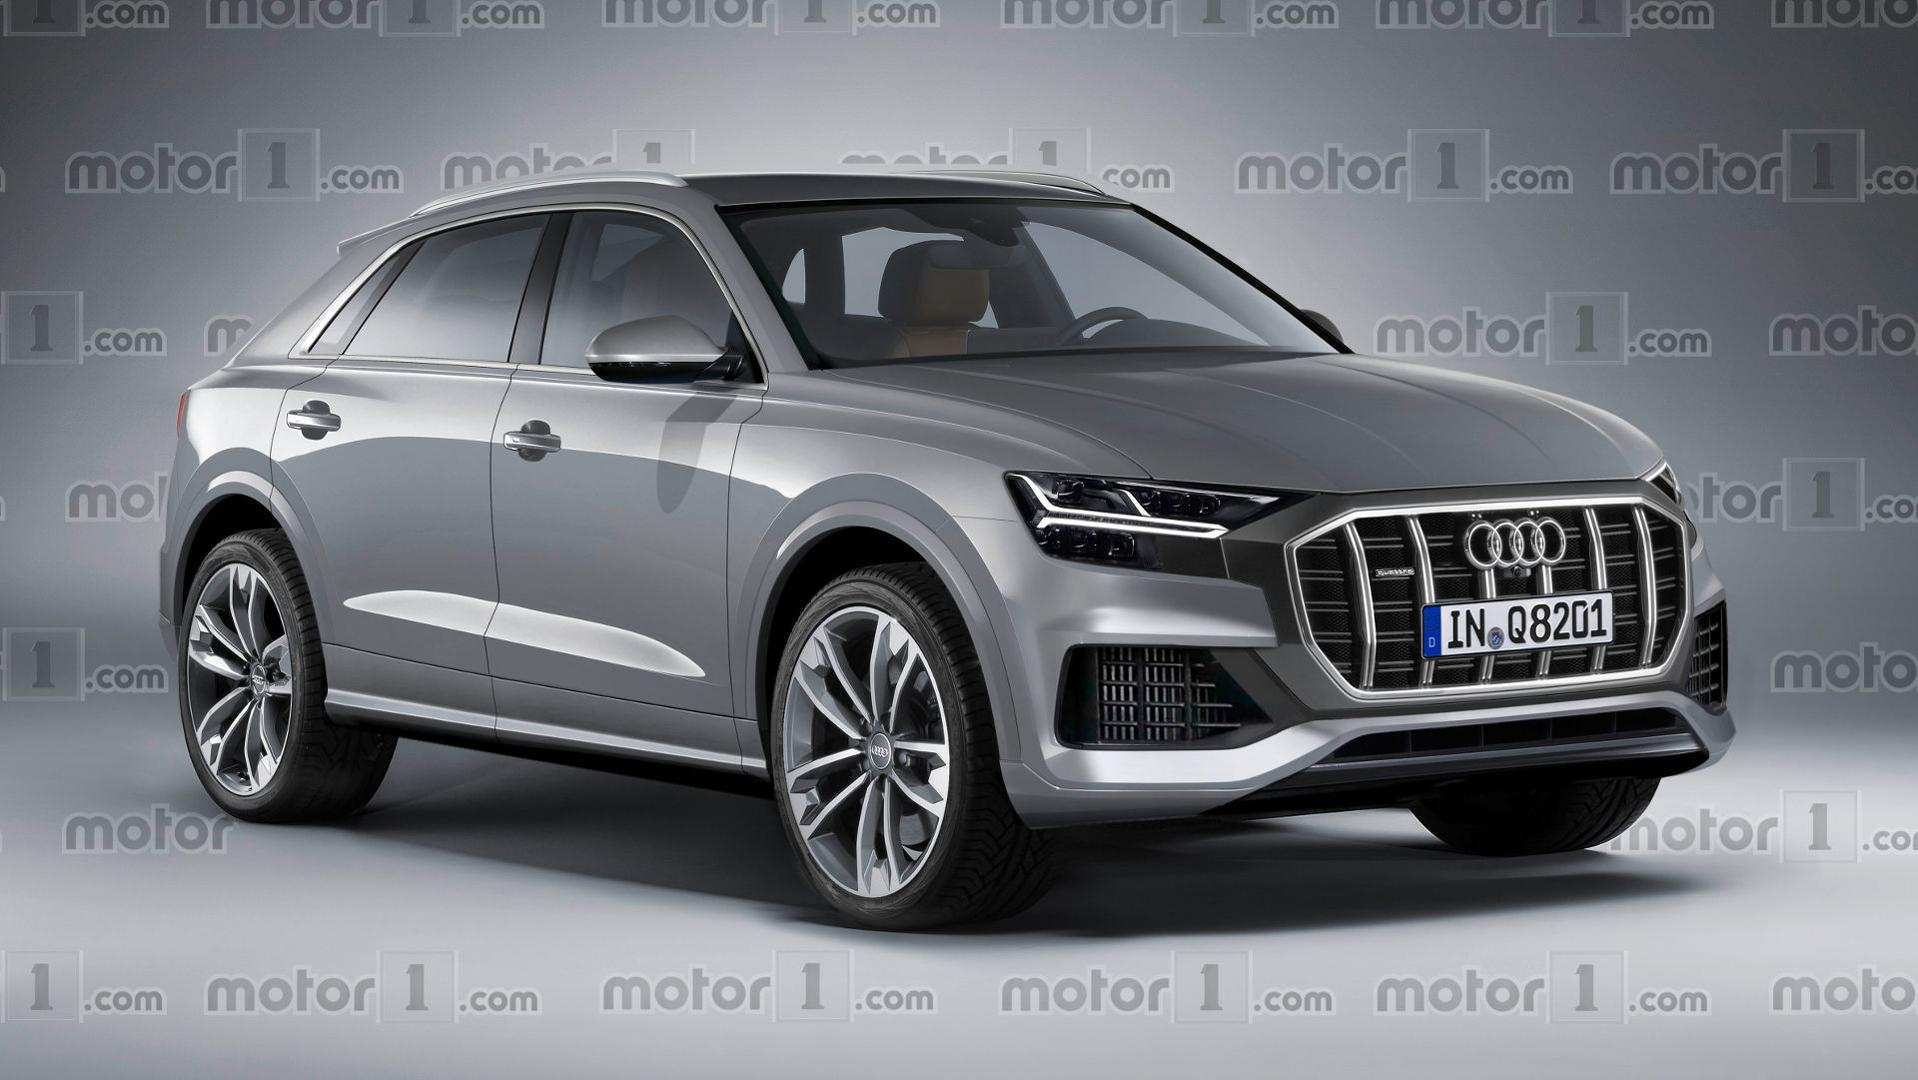 84 The Best 2019 Audi Q7 Tdi Usa Redesign